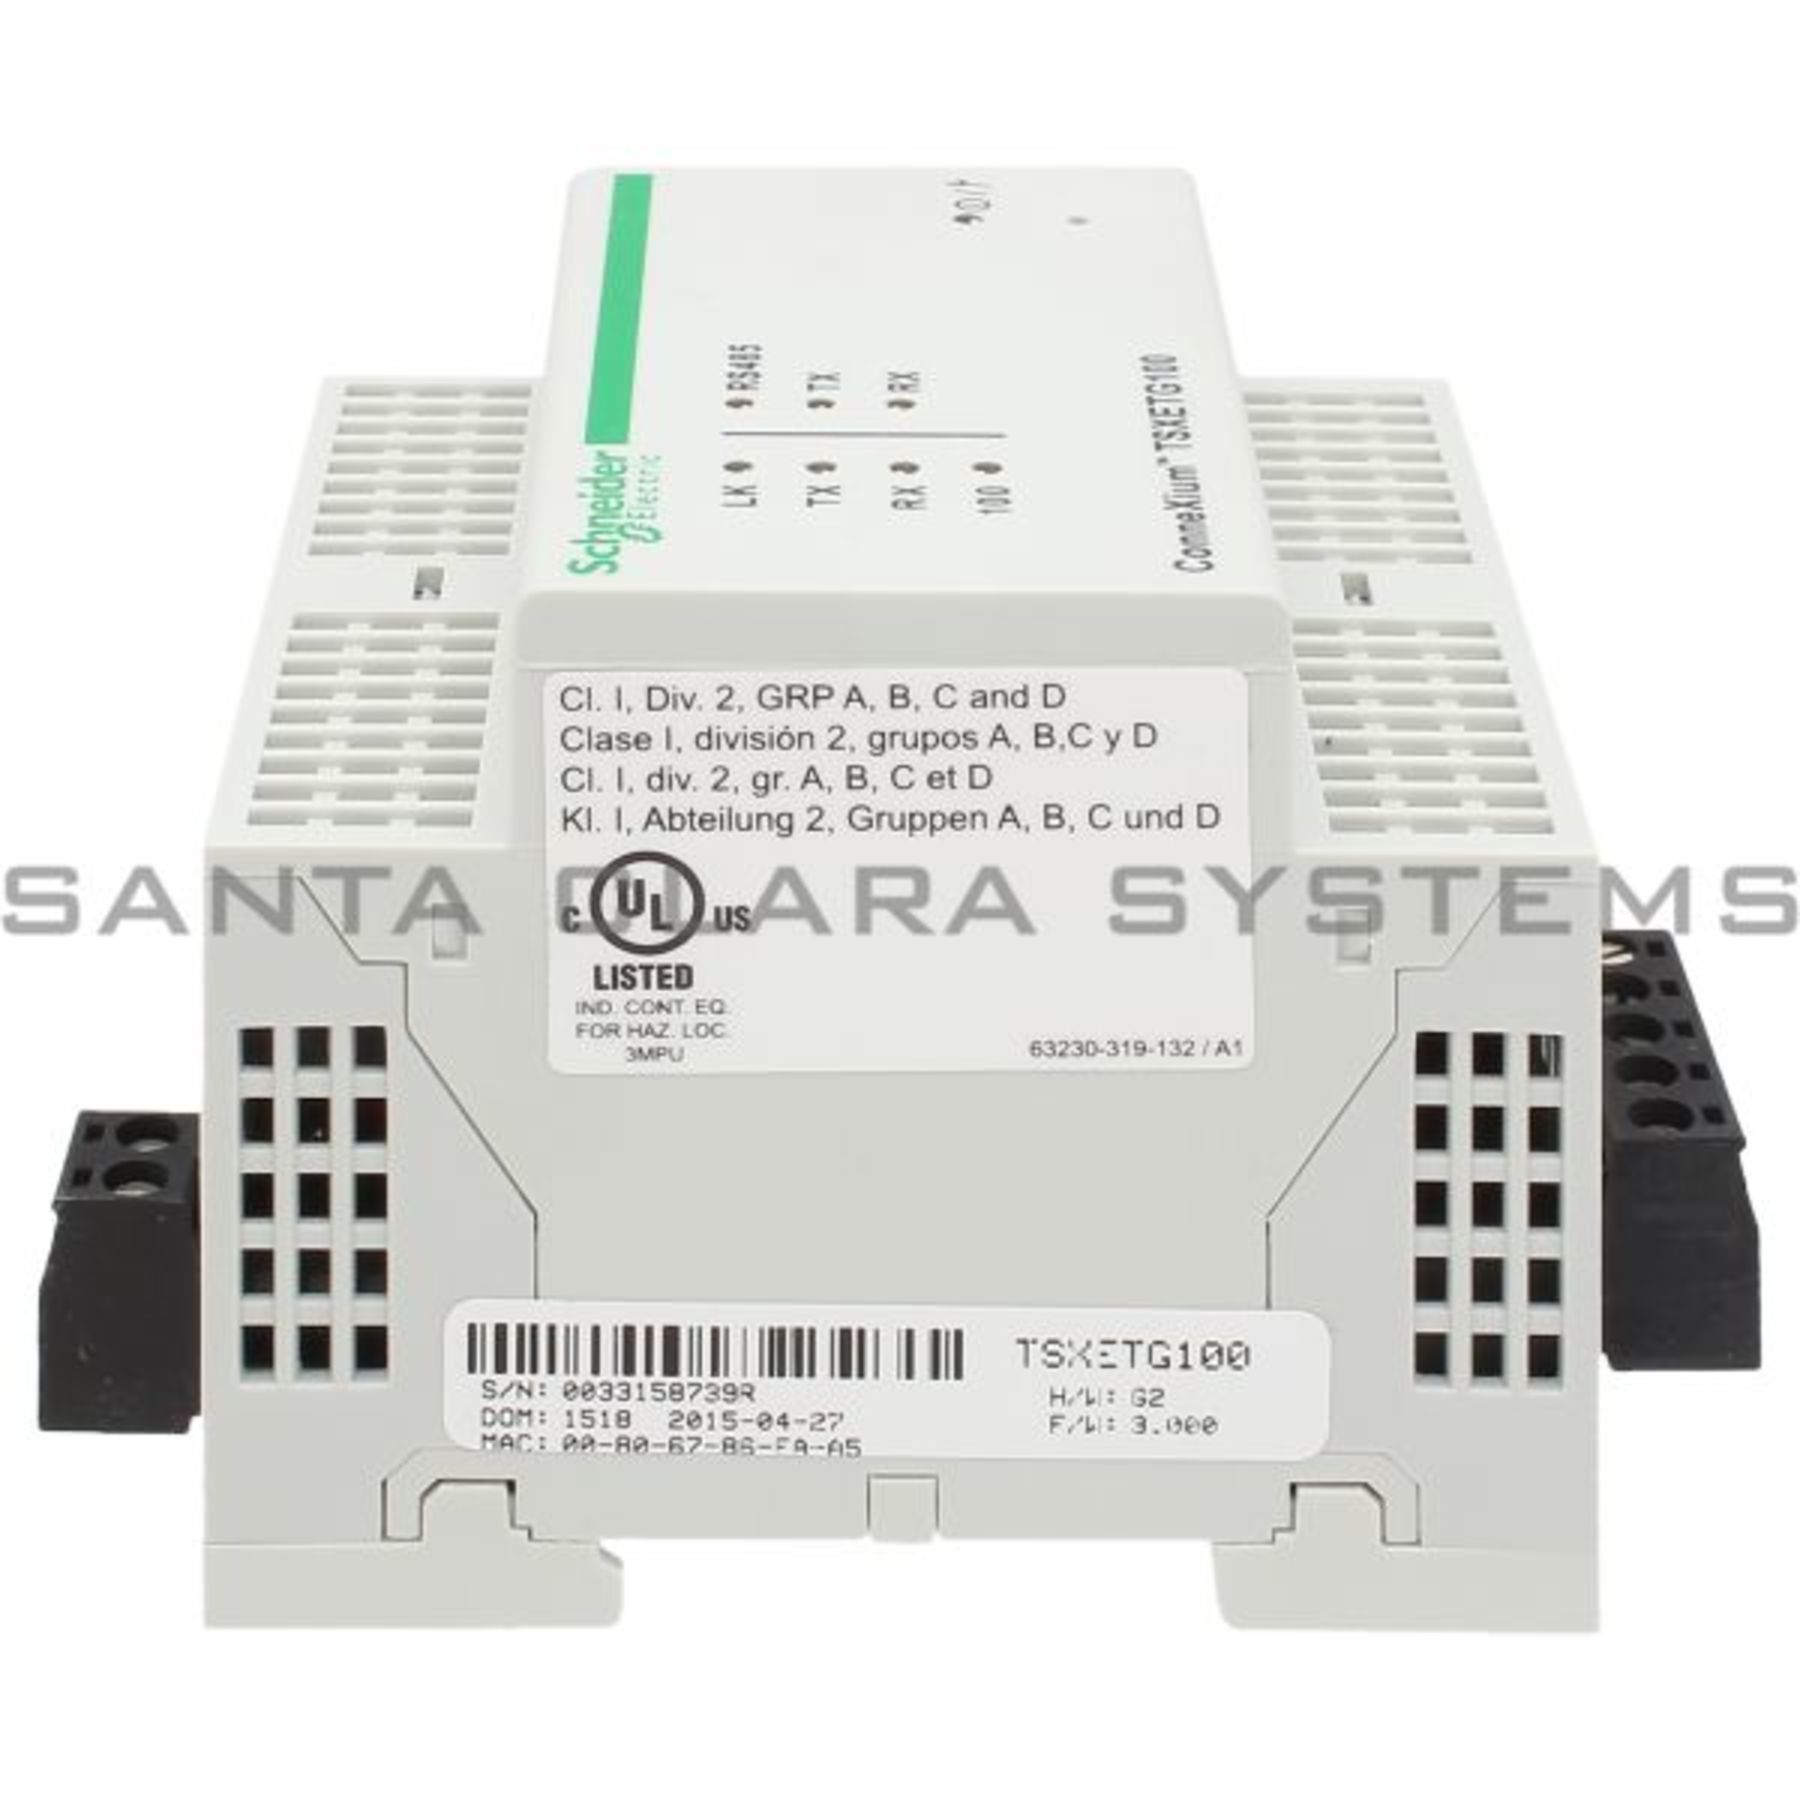 TSXETG100 Telemecanique In stock and ready to ship - Santa